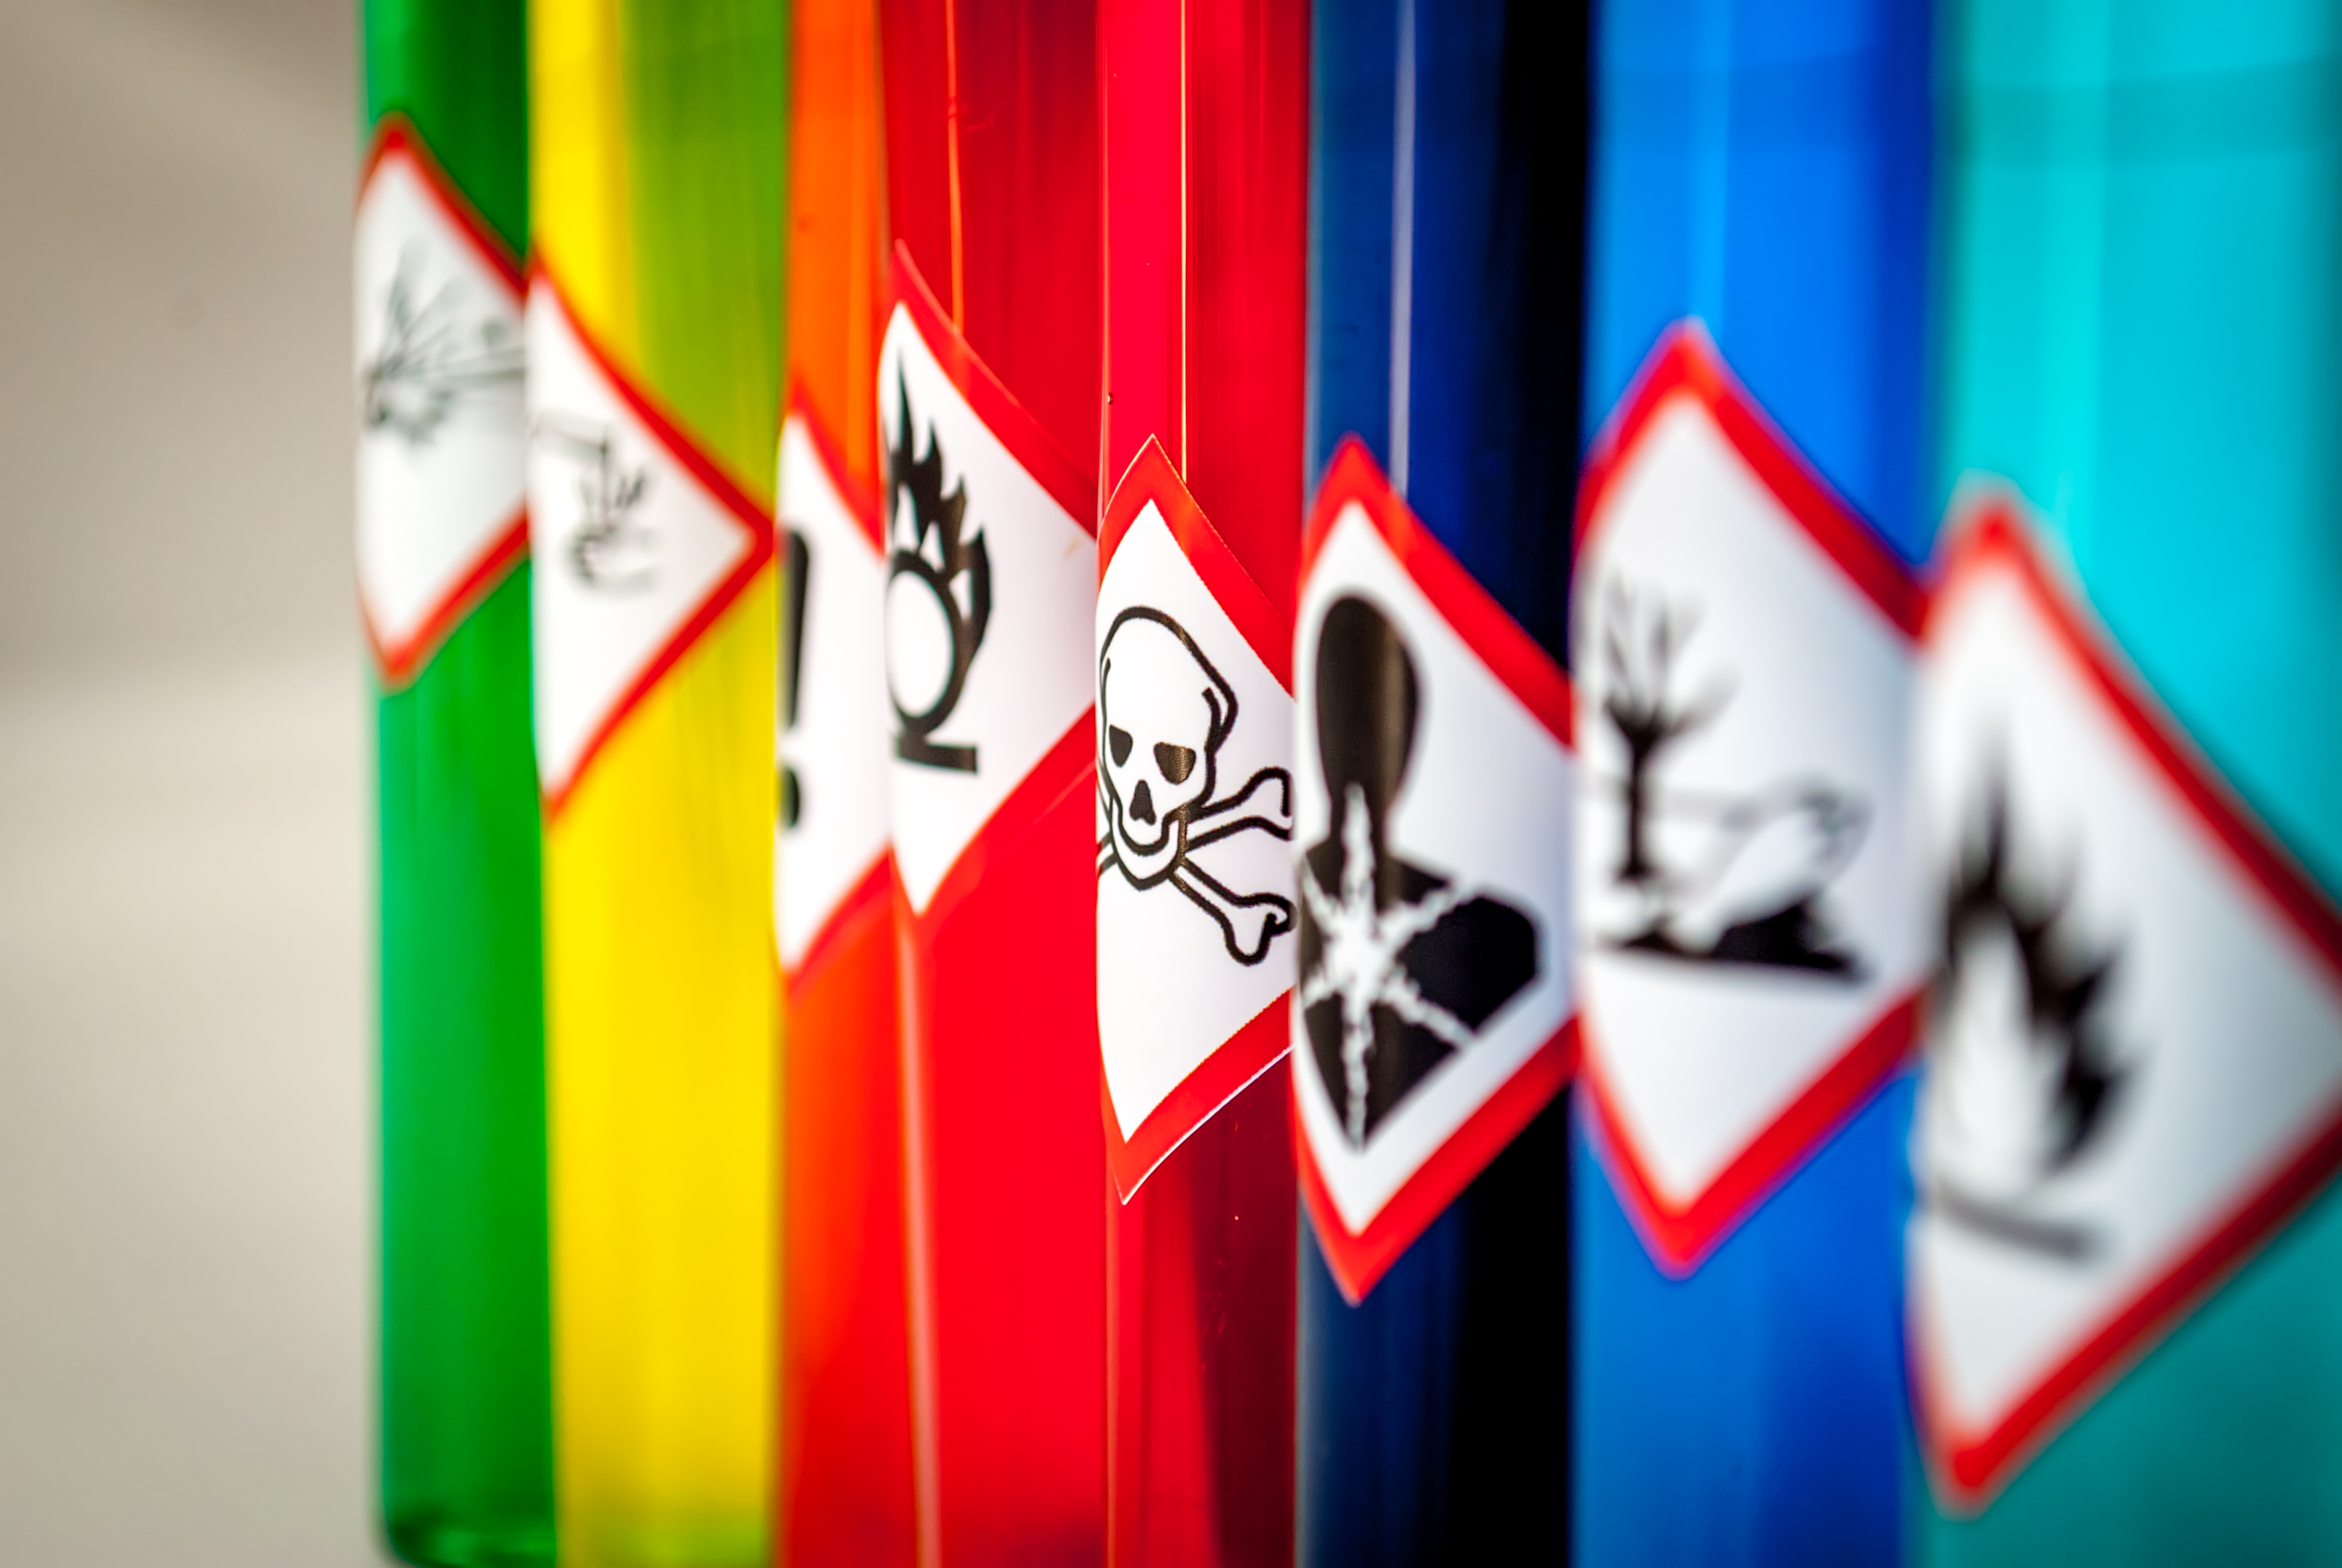 COSHH and Rules for the Workplace